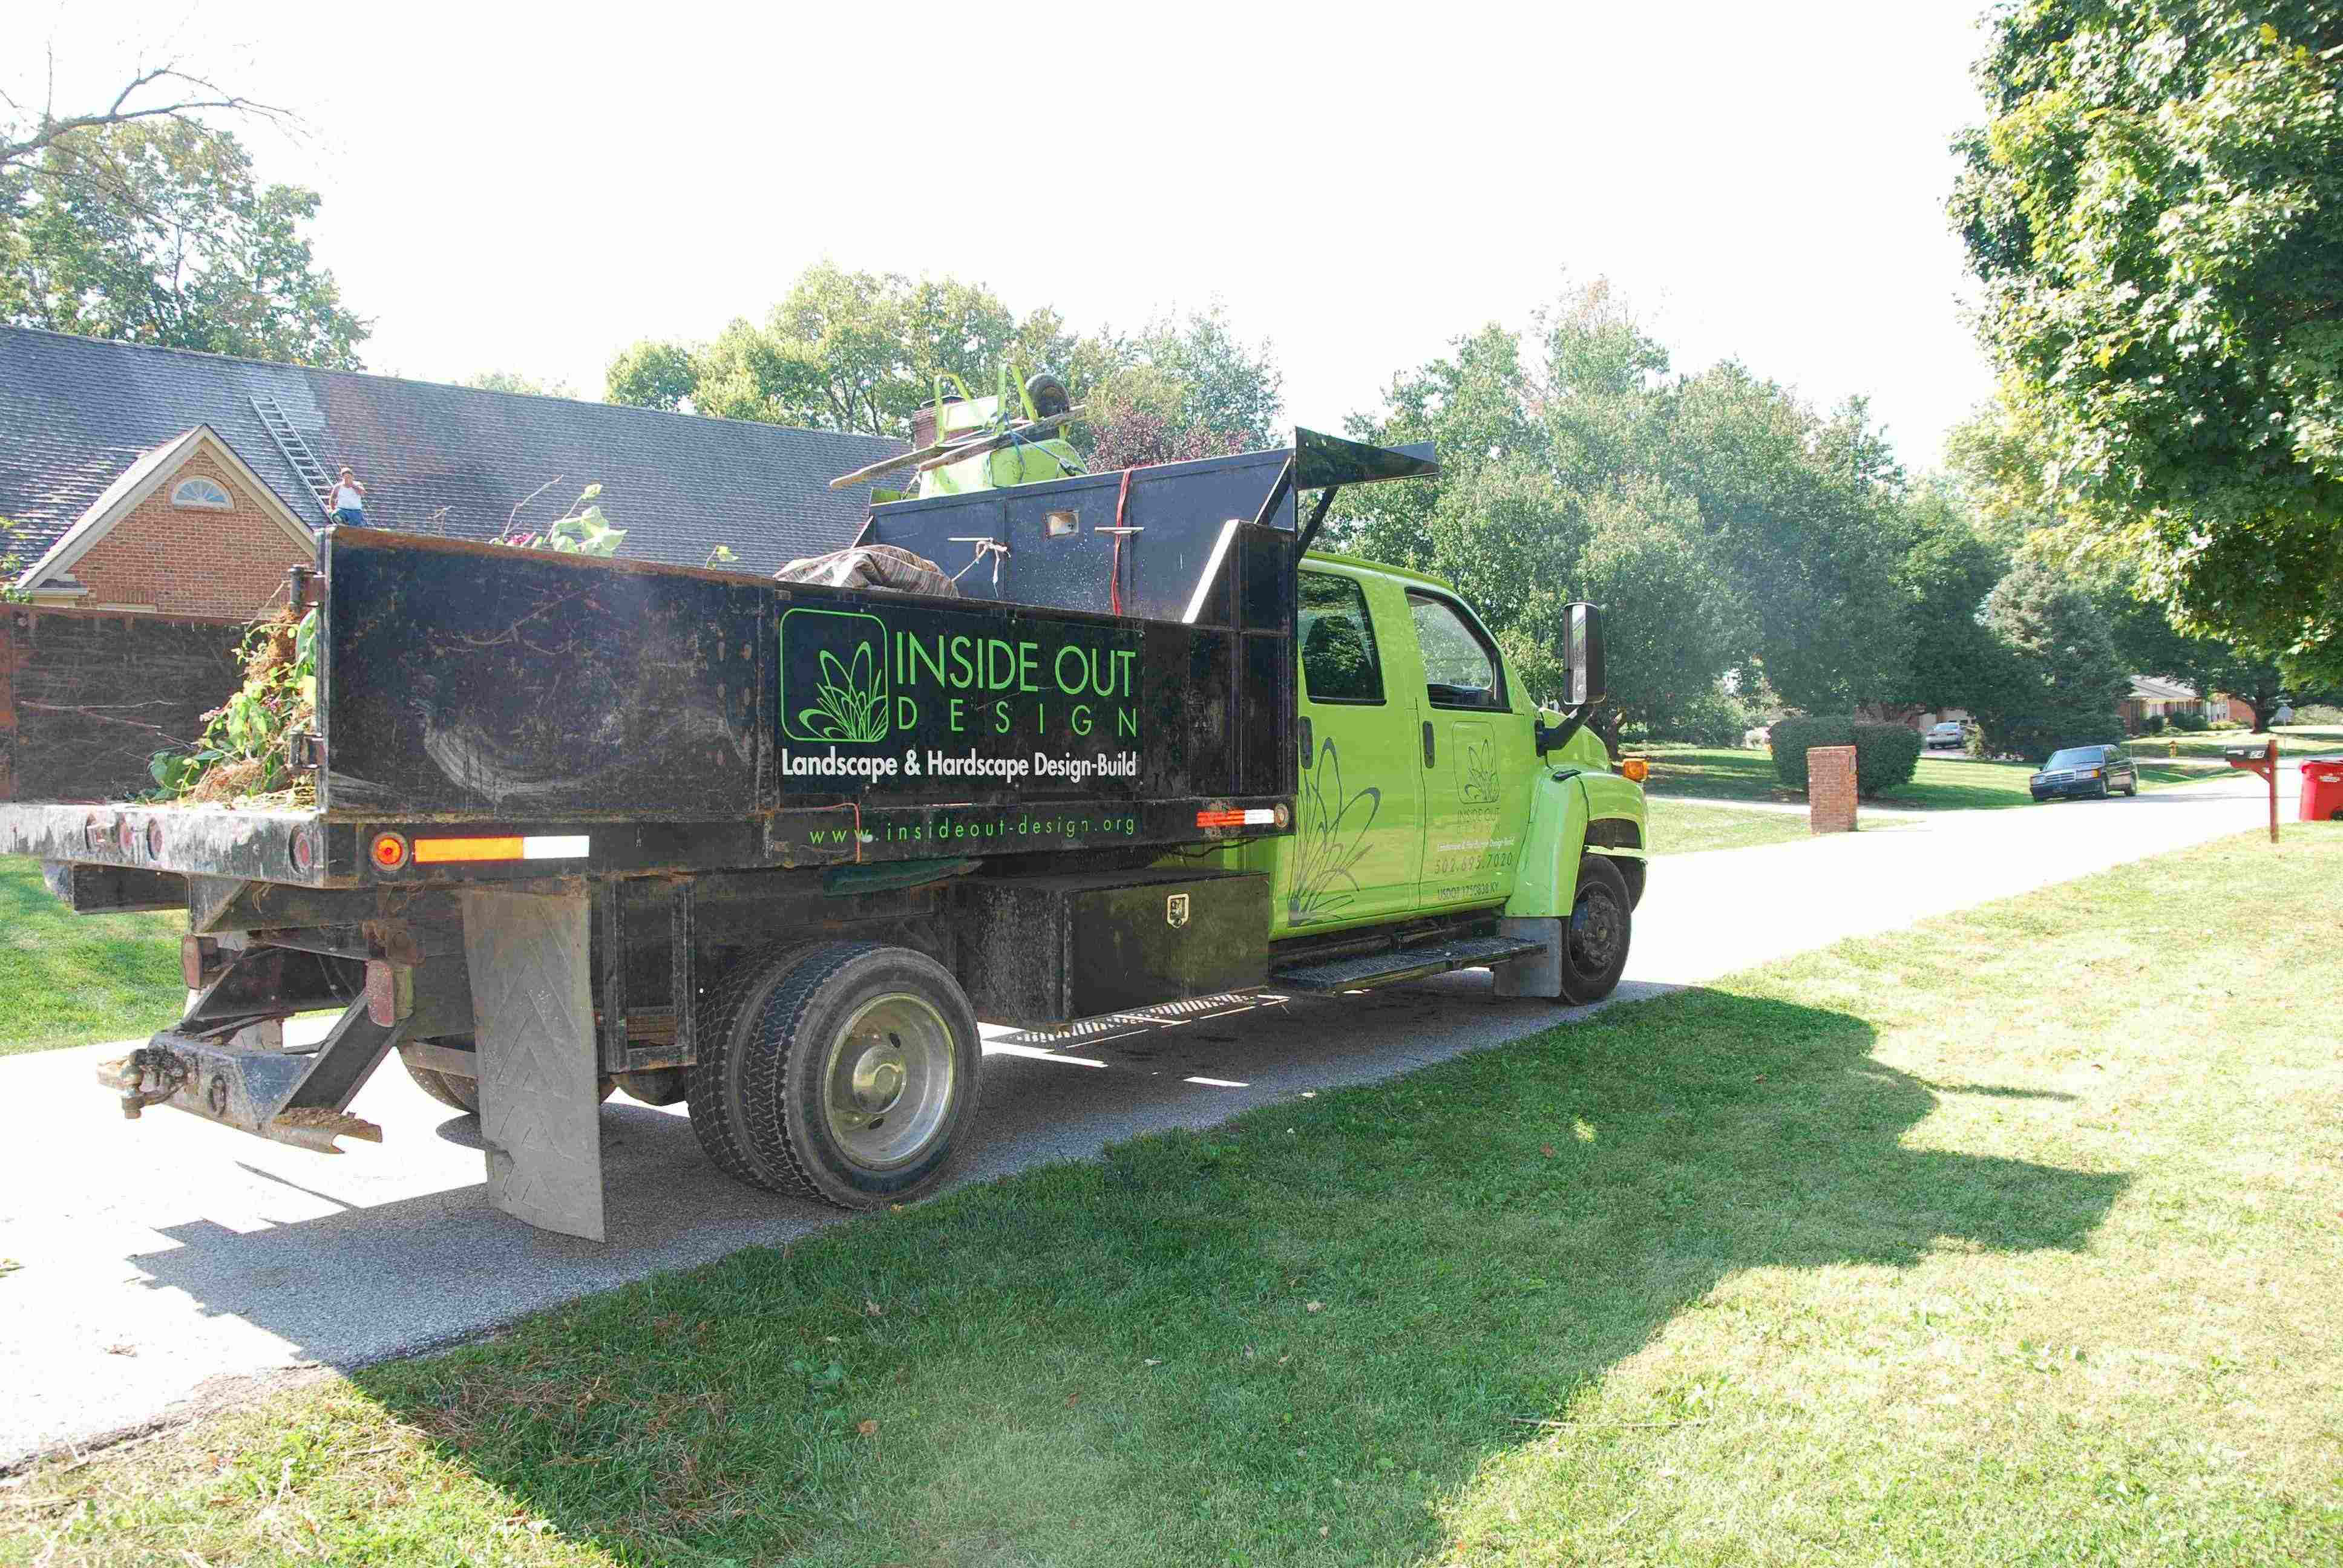 How to turn fleets into marketing machines for Landscape gardening company